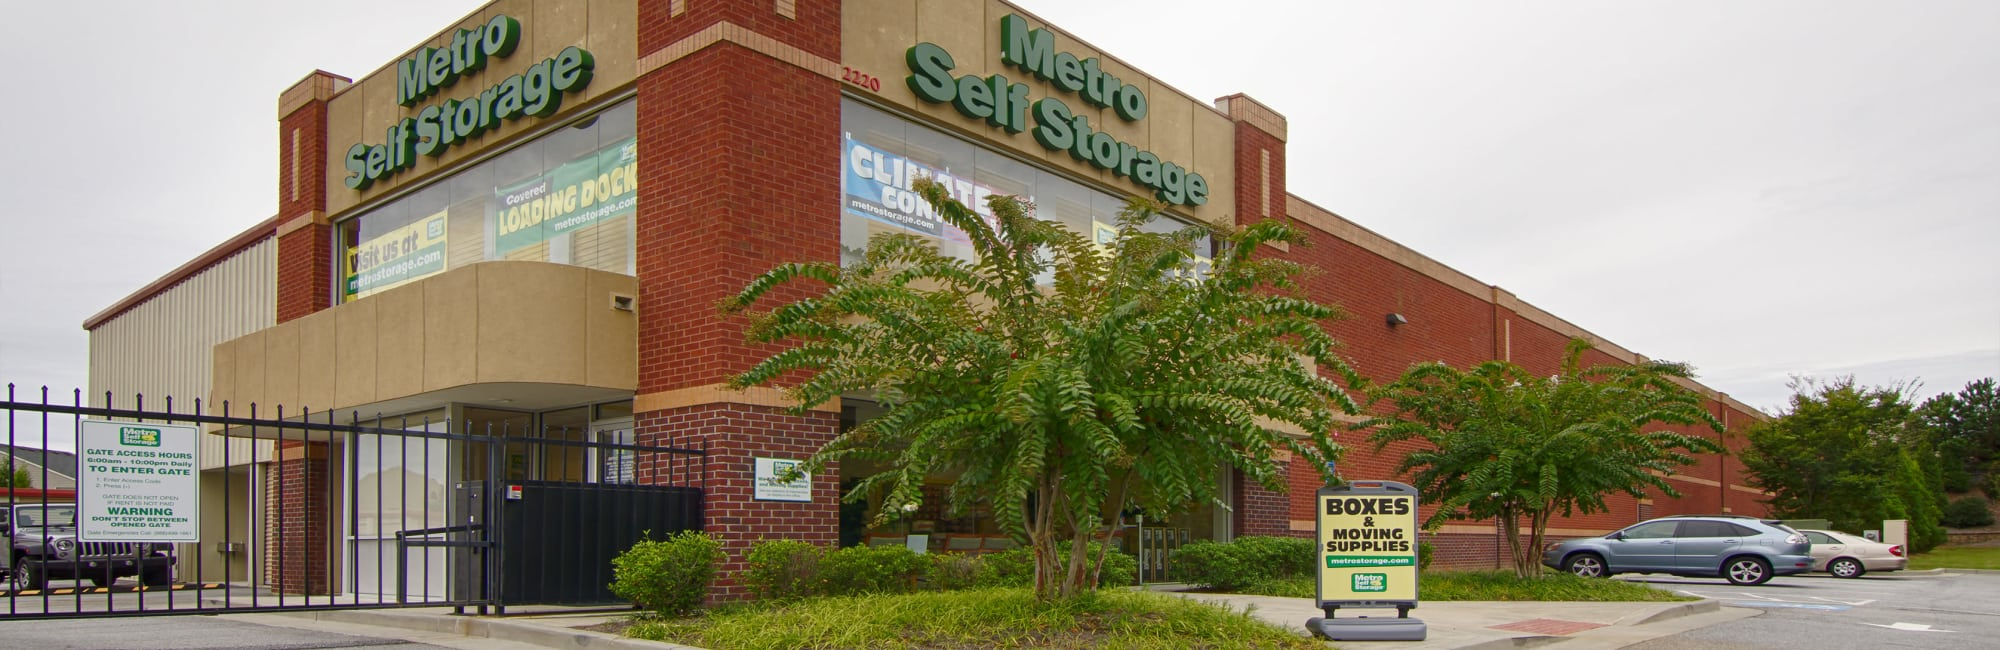 Metro Self Storage in Lawrenceville, GA